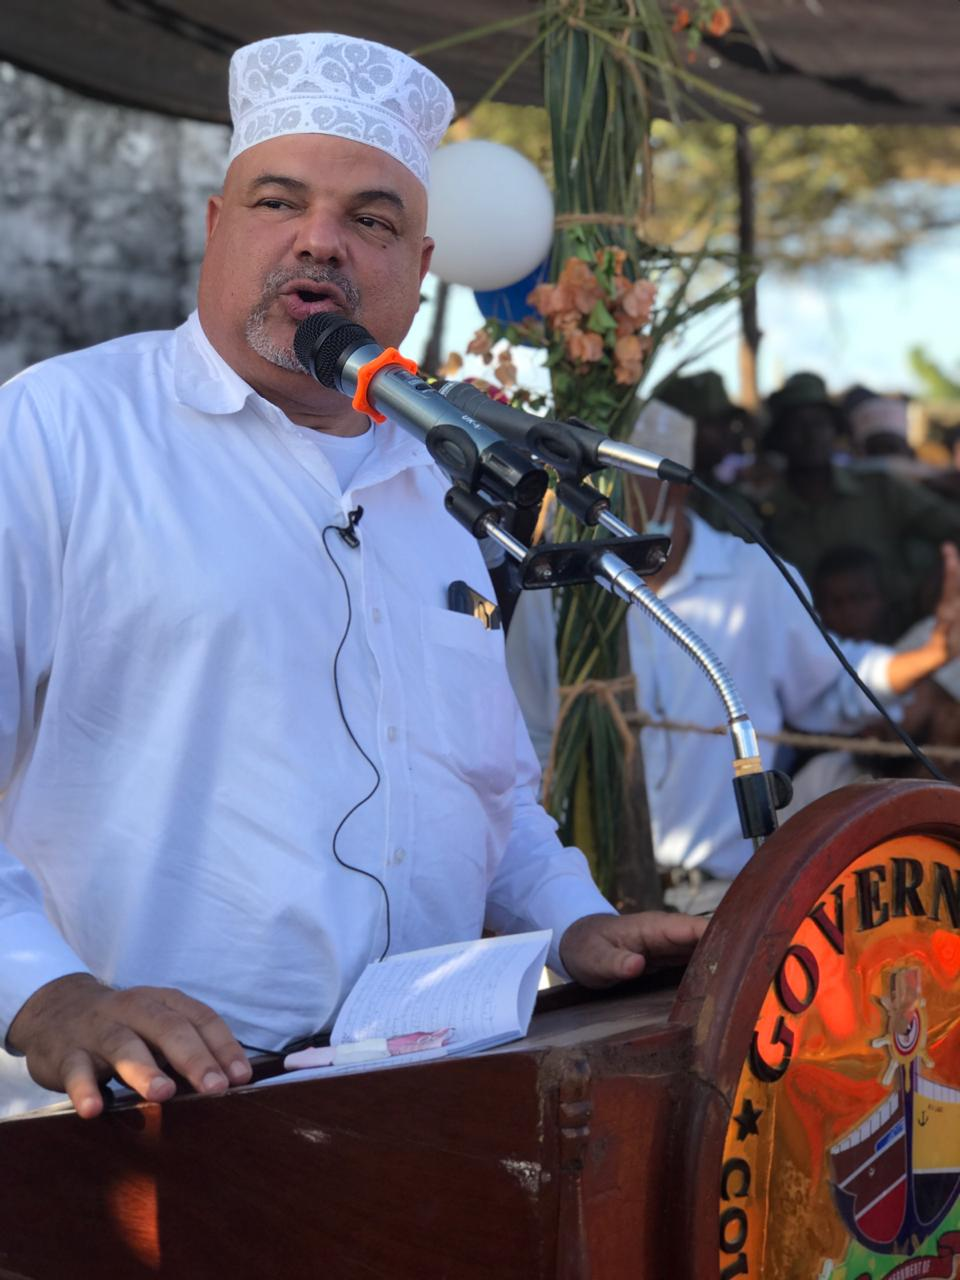 Governor Fahim Twaha has reiterated on his commitment to solve the historical crises of land title deeds and water availability in Lamu.